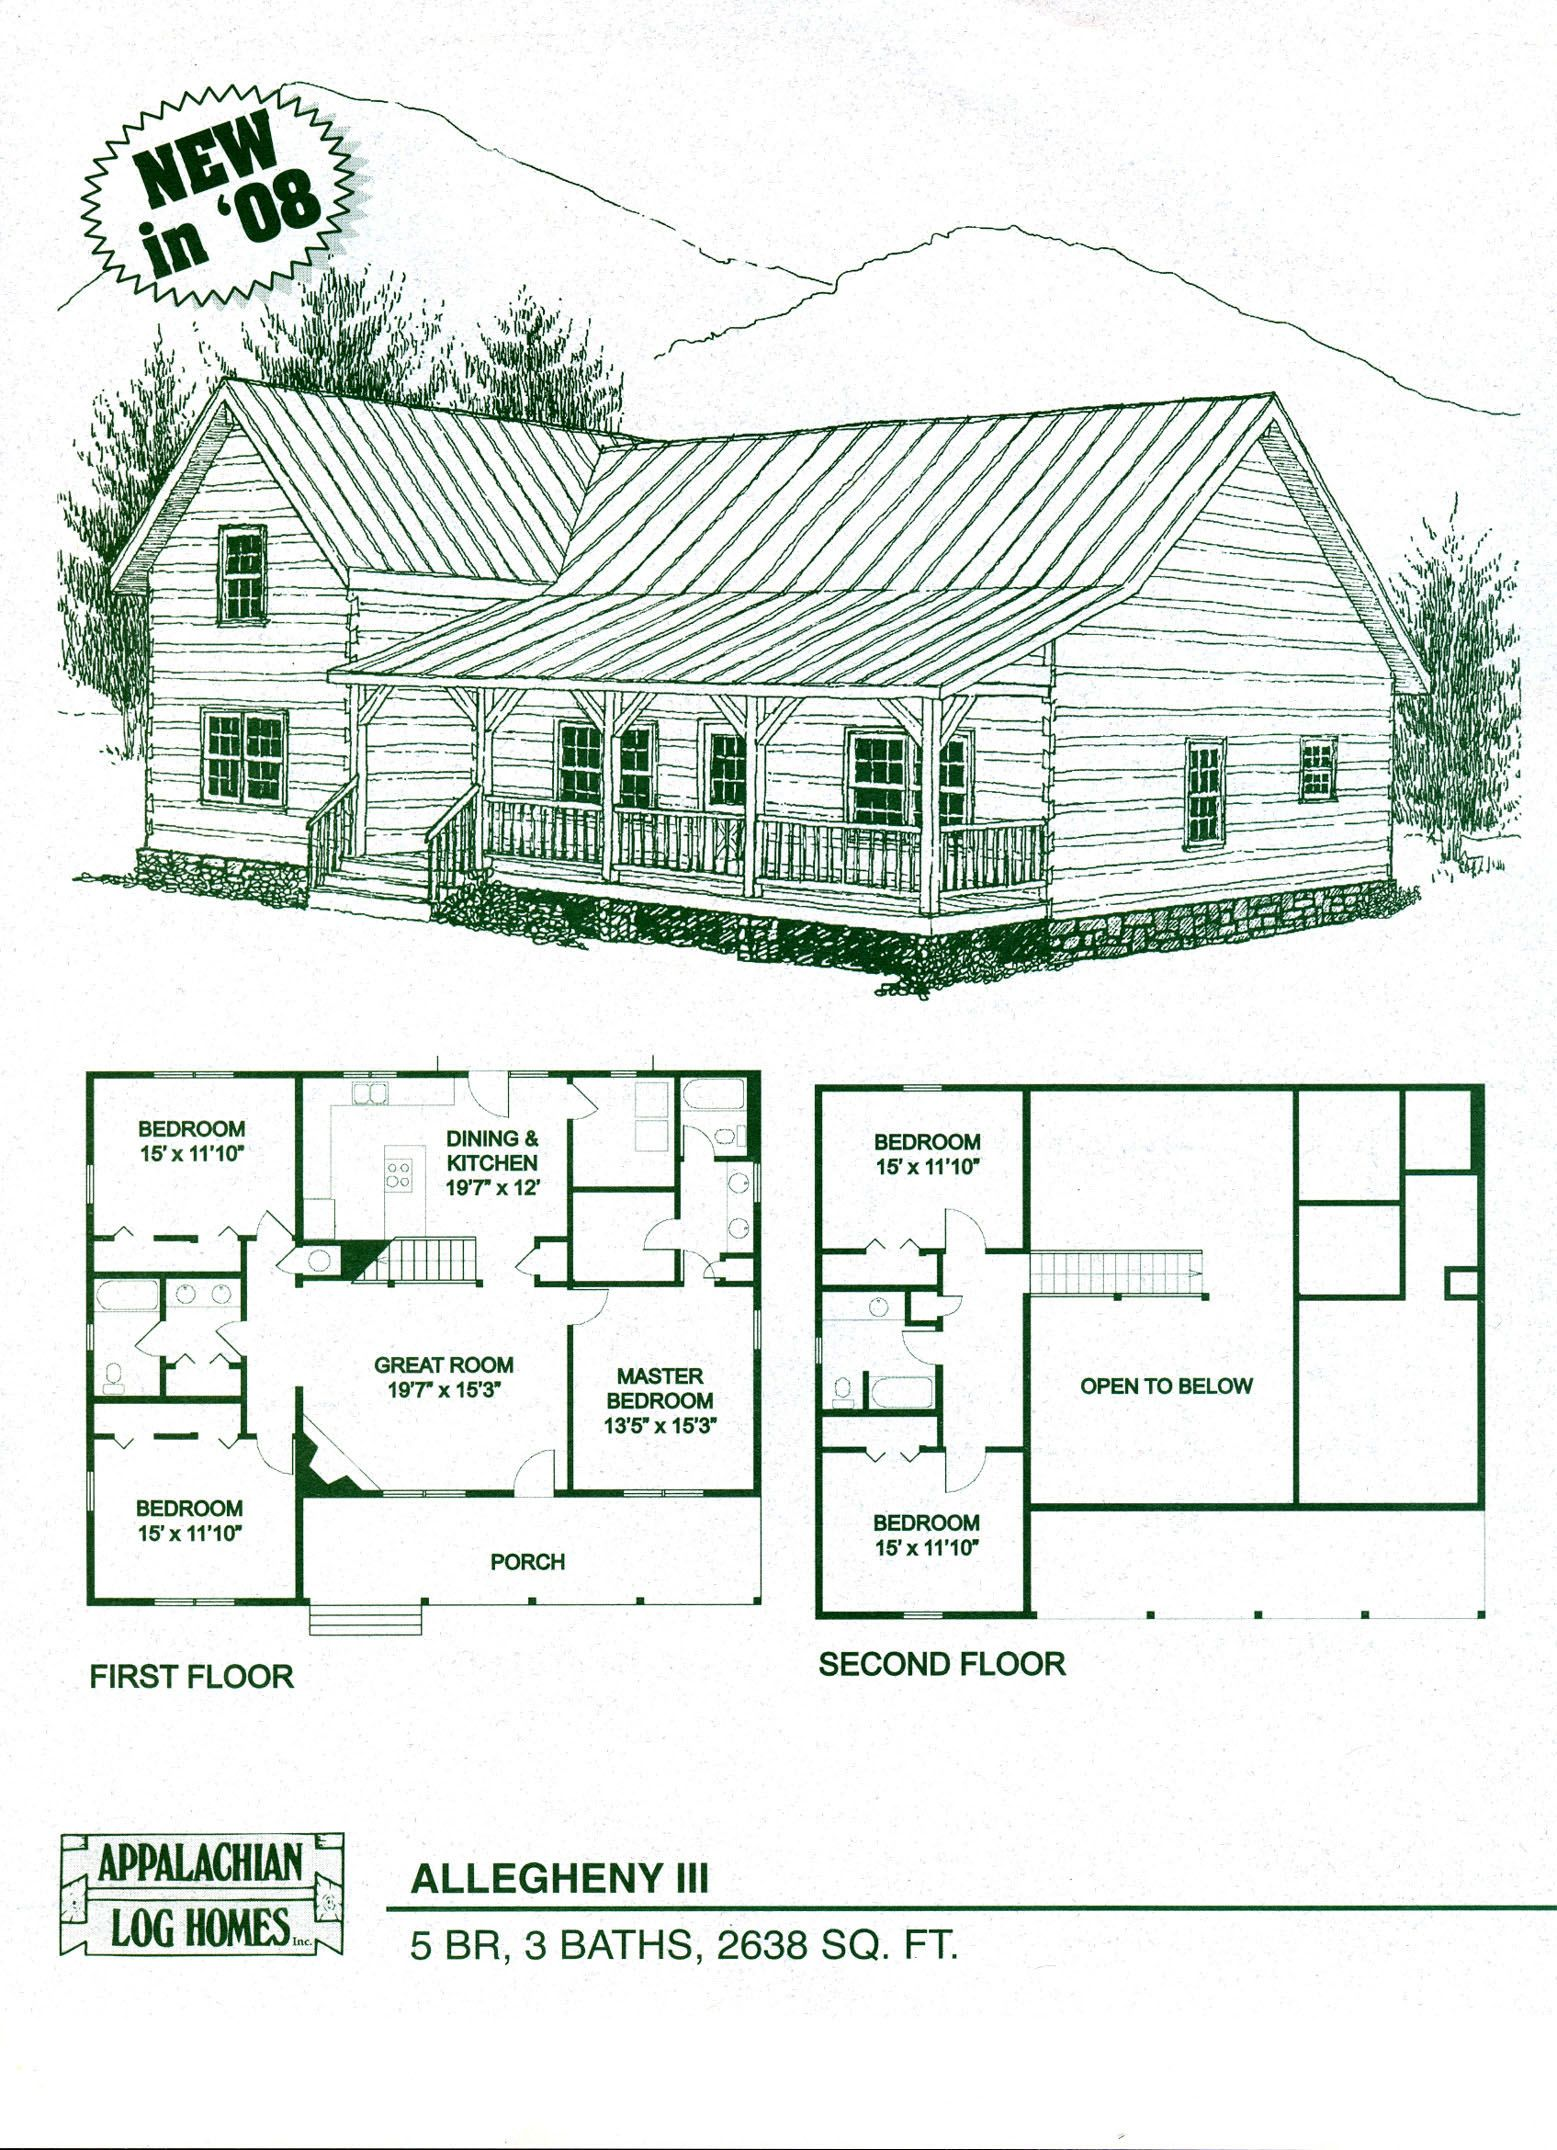 Log home floor plans log cabin kits appalachian log for Cabin house plans free